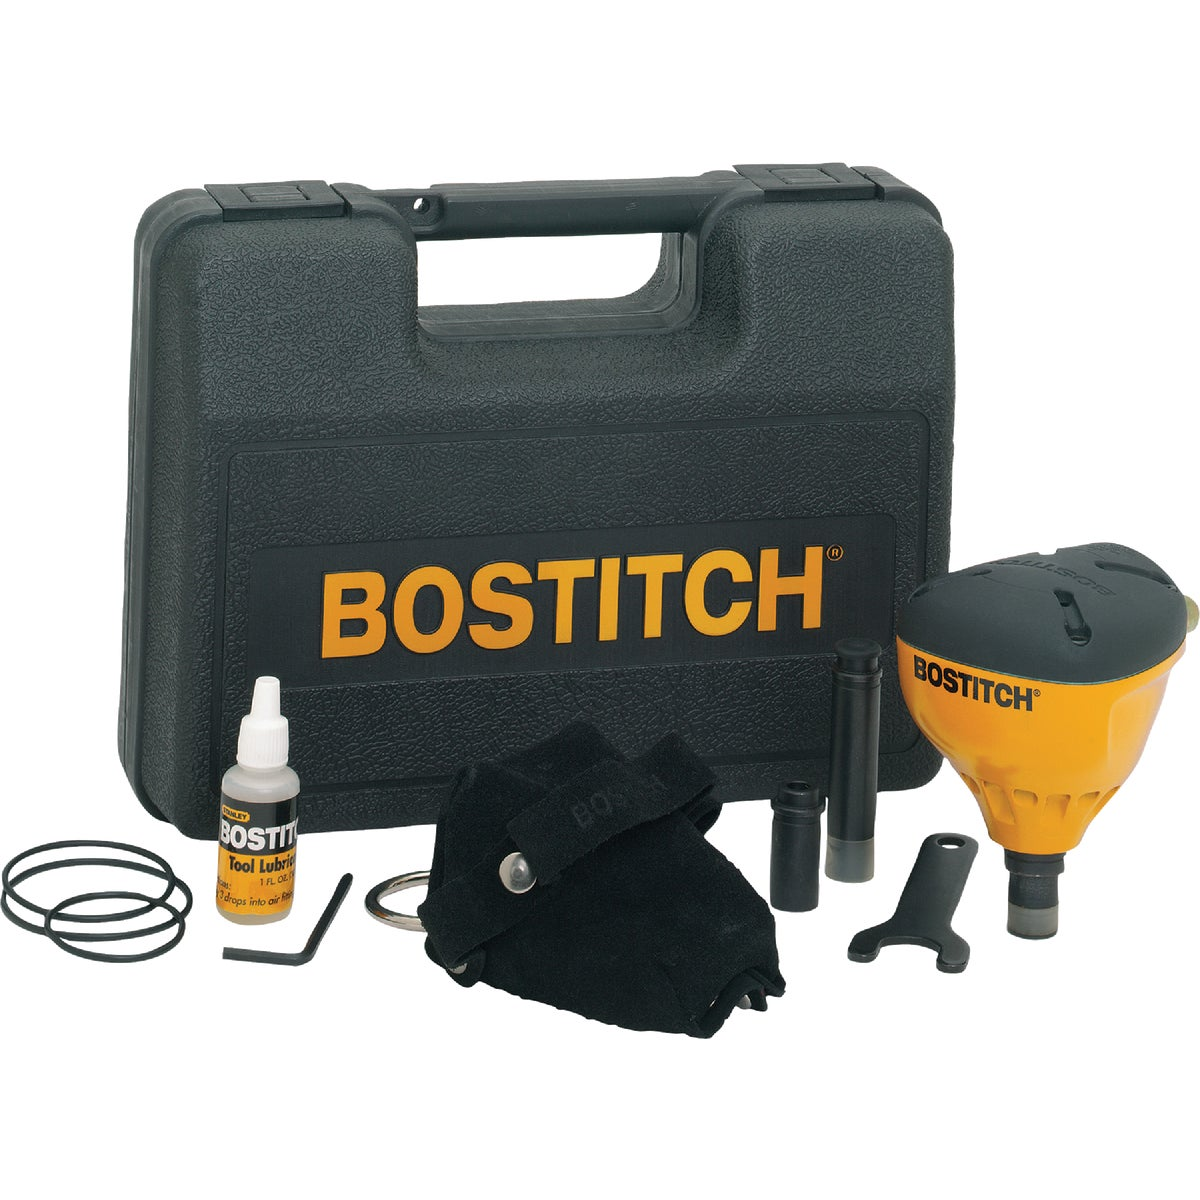 PALM NAILER KIT - PN100K by Stanley Bostitch